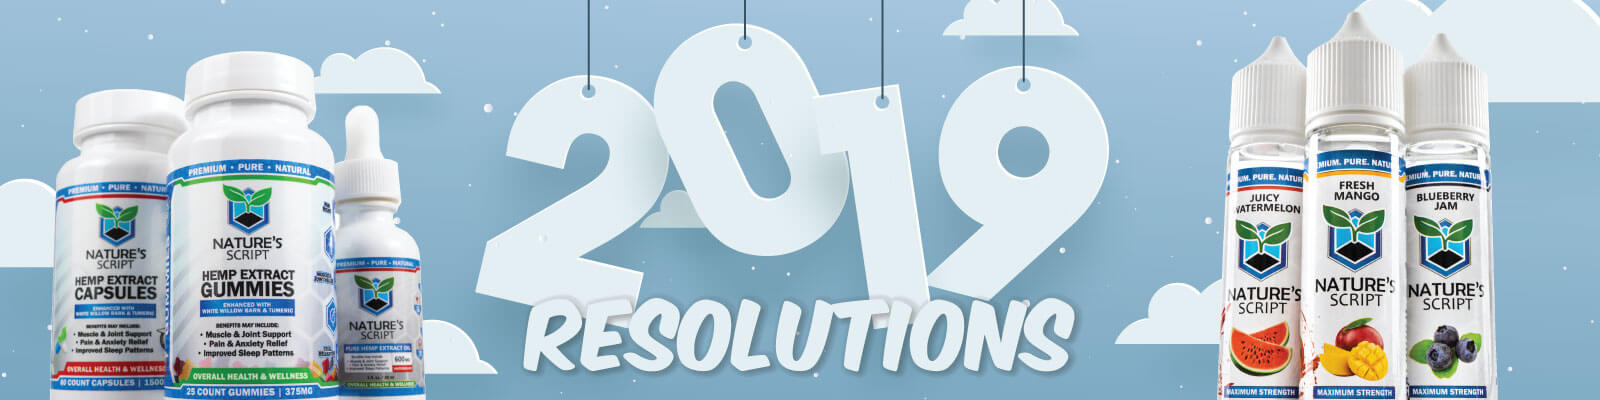 New Year's resolutions natures script products